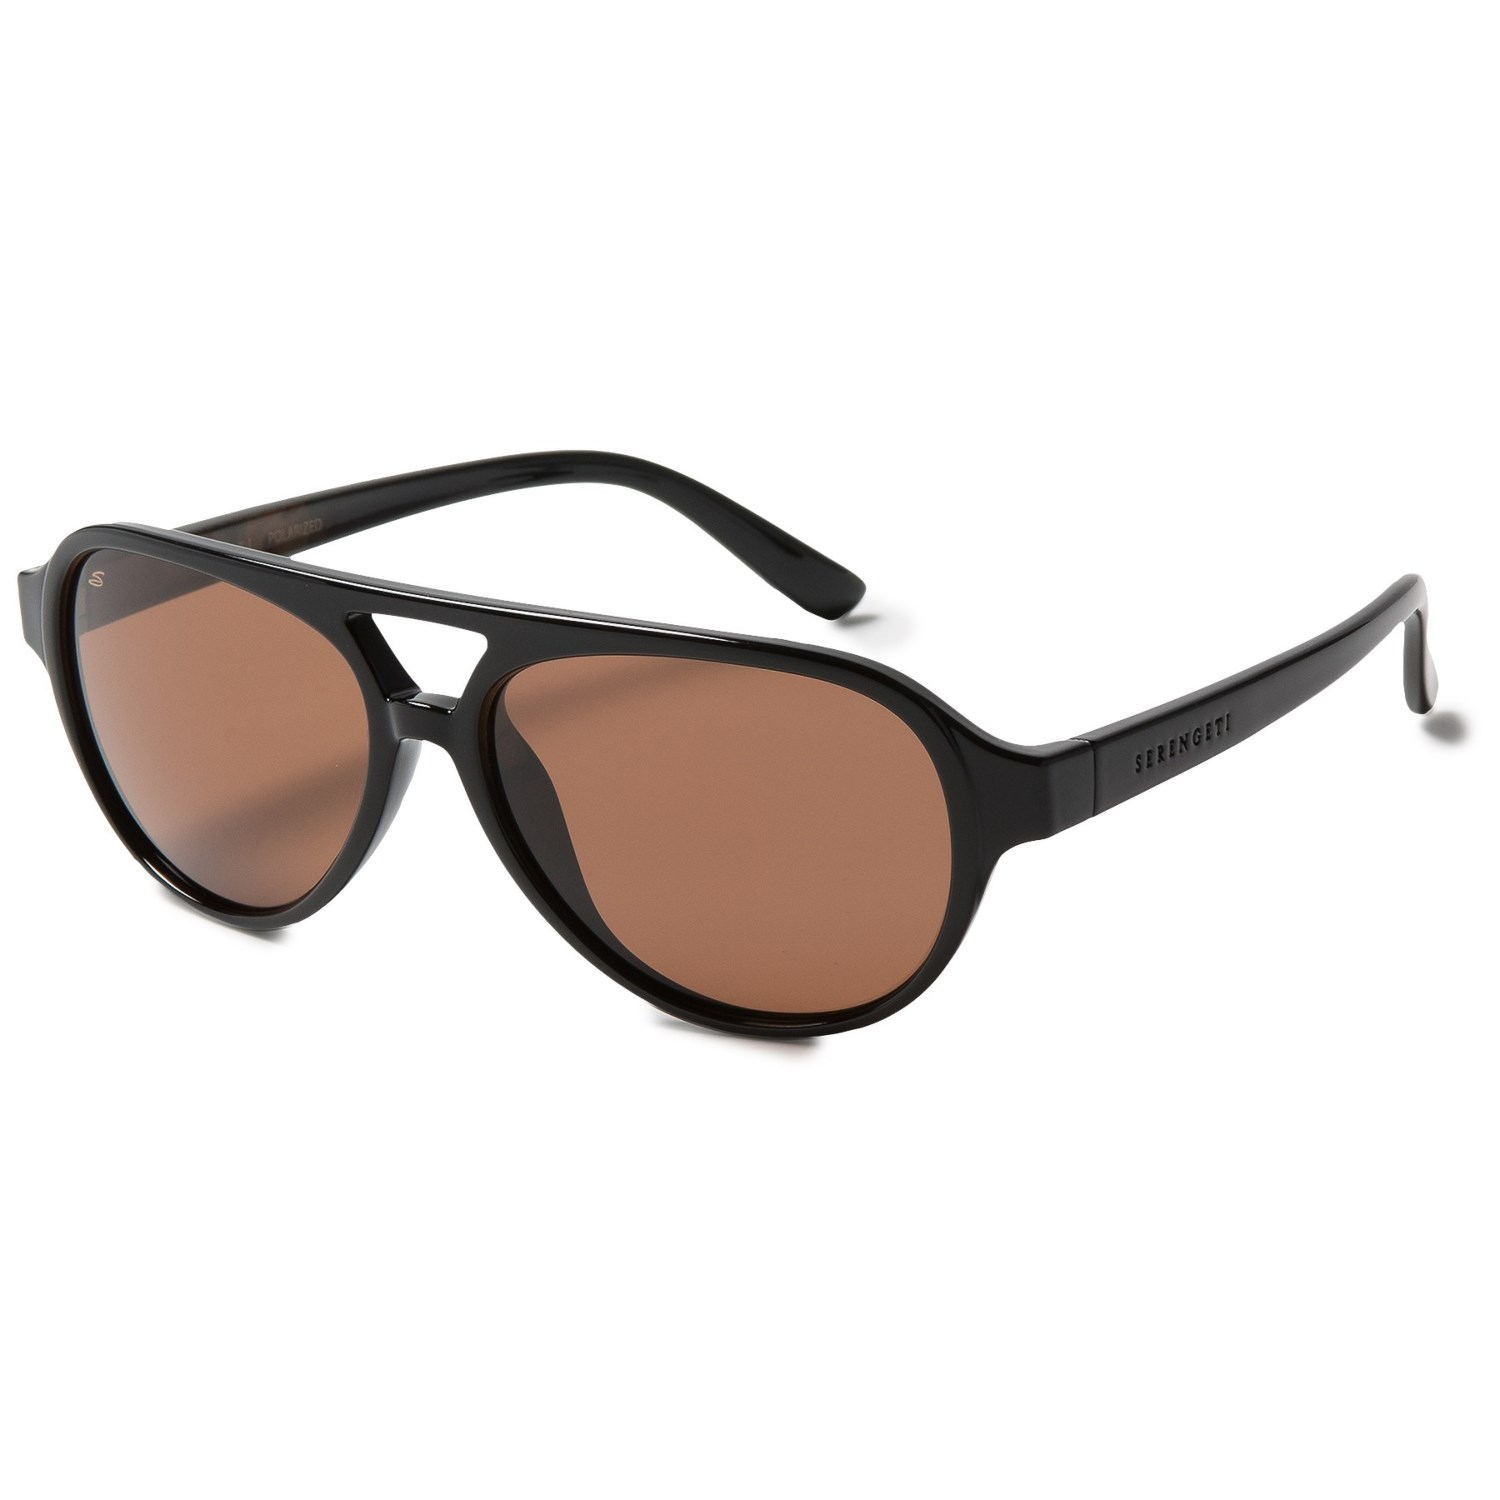 polarized sunglasses glass lenses  Serengeti Giorgio Sunglasses - Polarized, Photochromic Glass ...